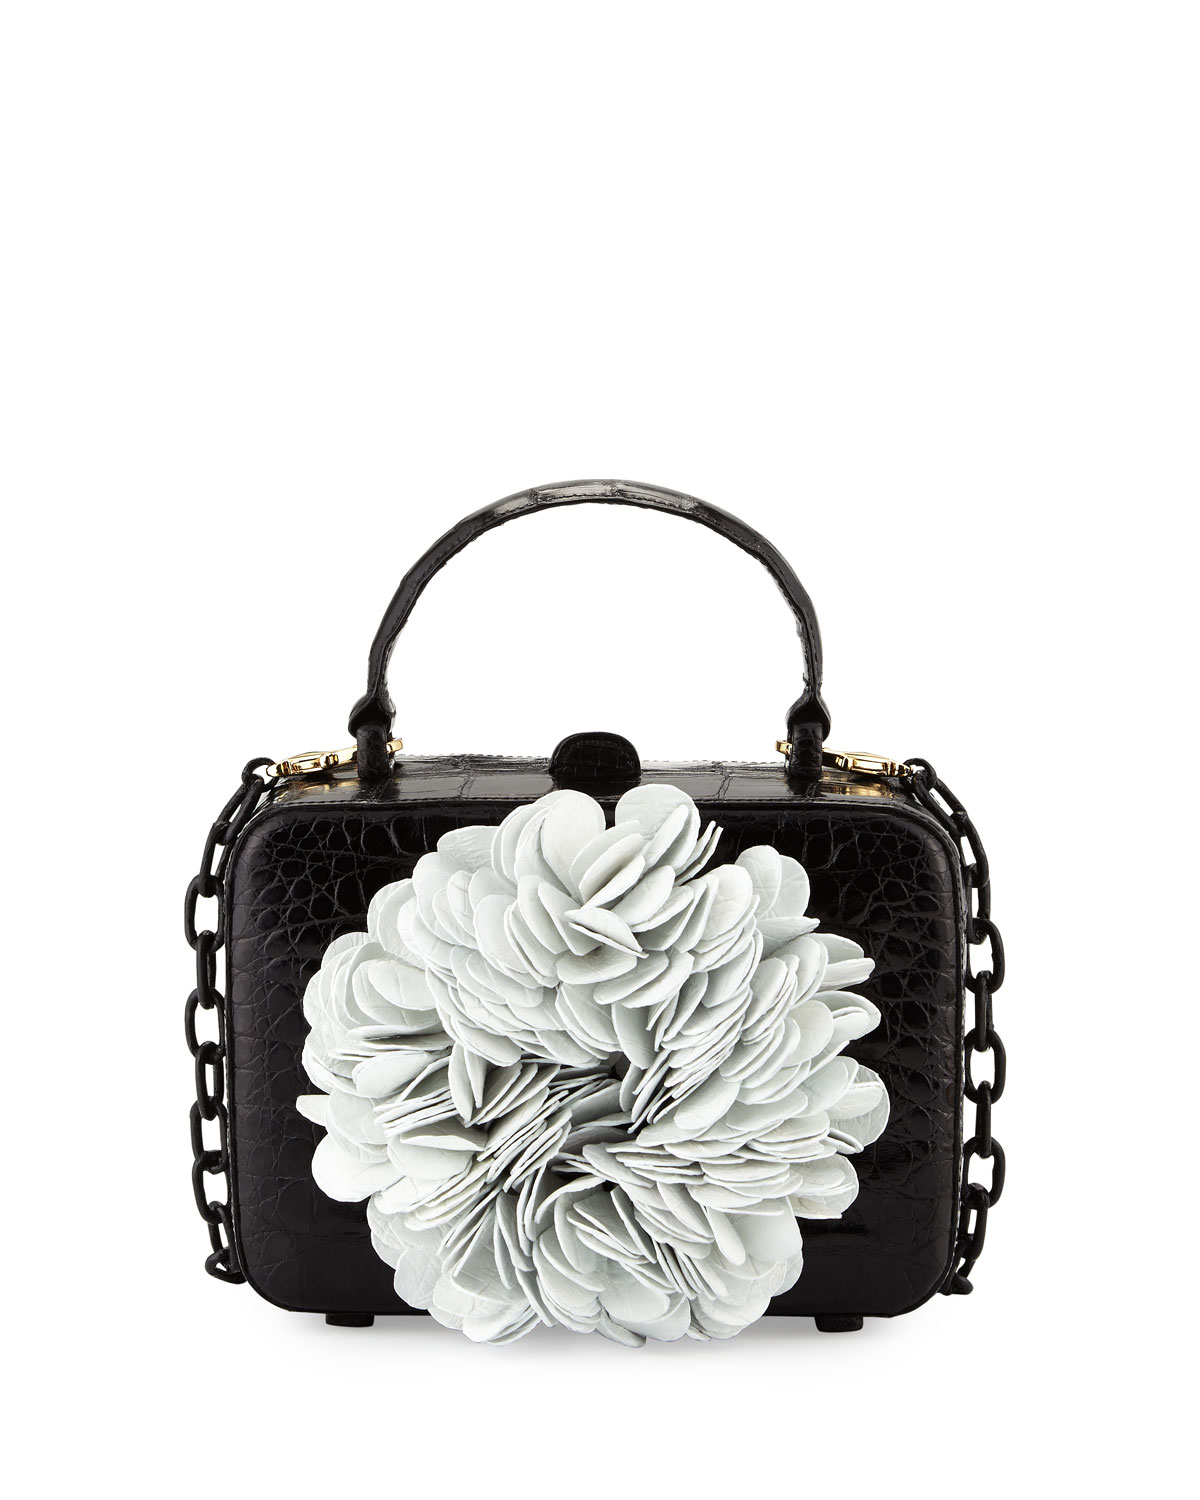 Floral Top-Handle Structured Box Bag, Black/White